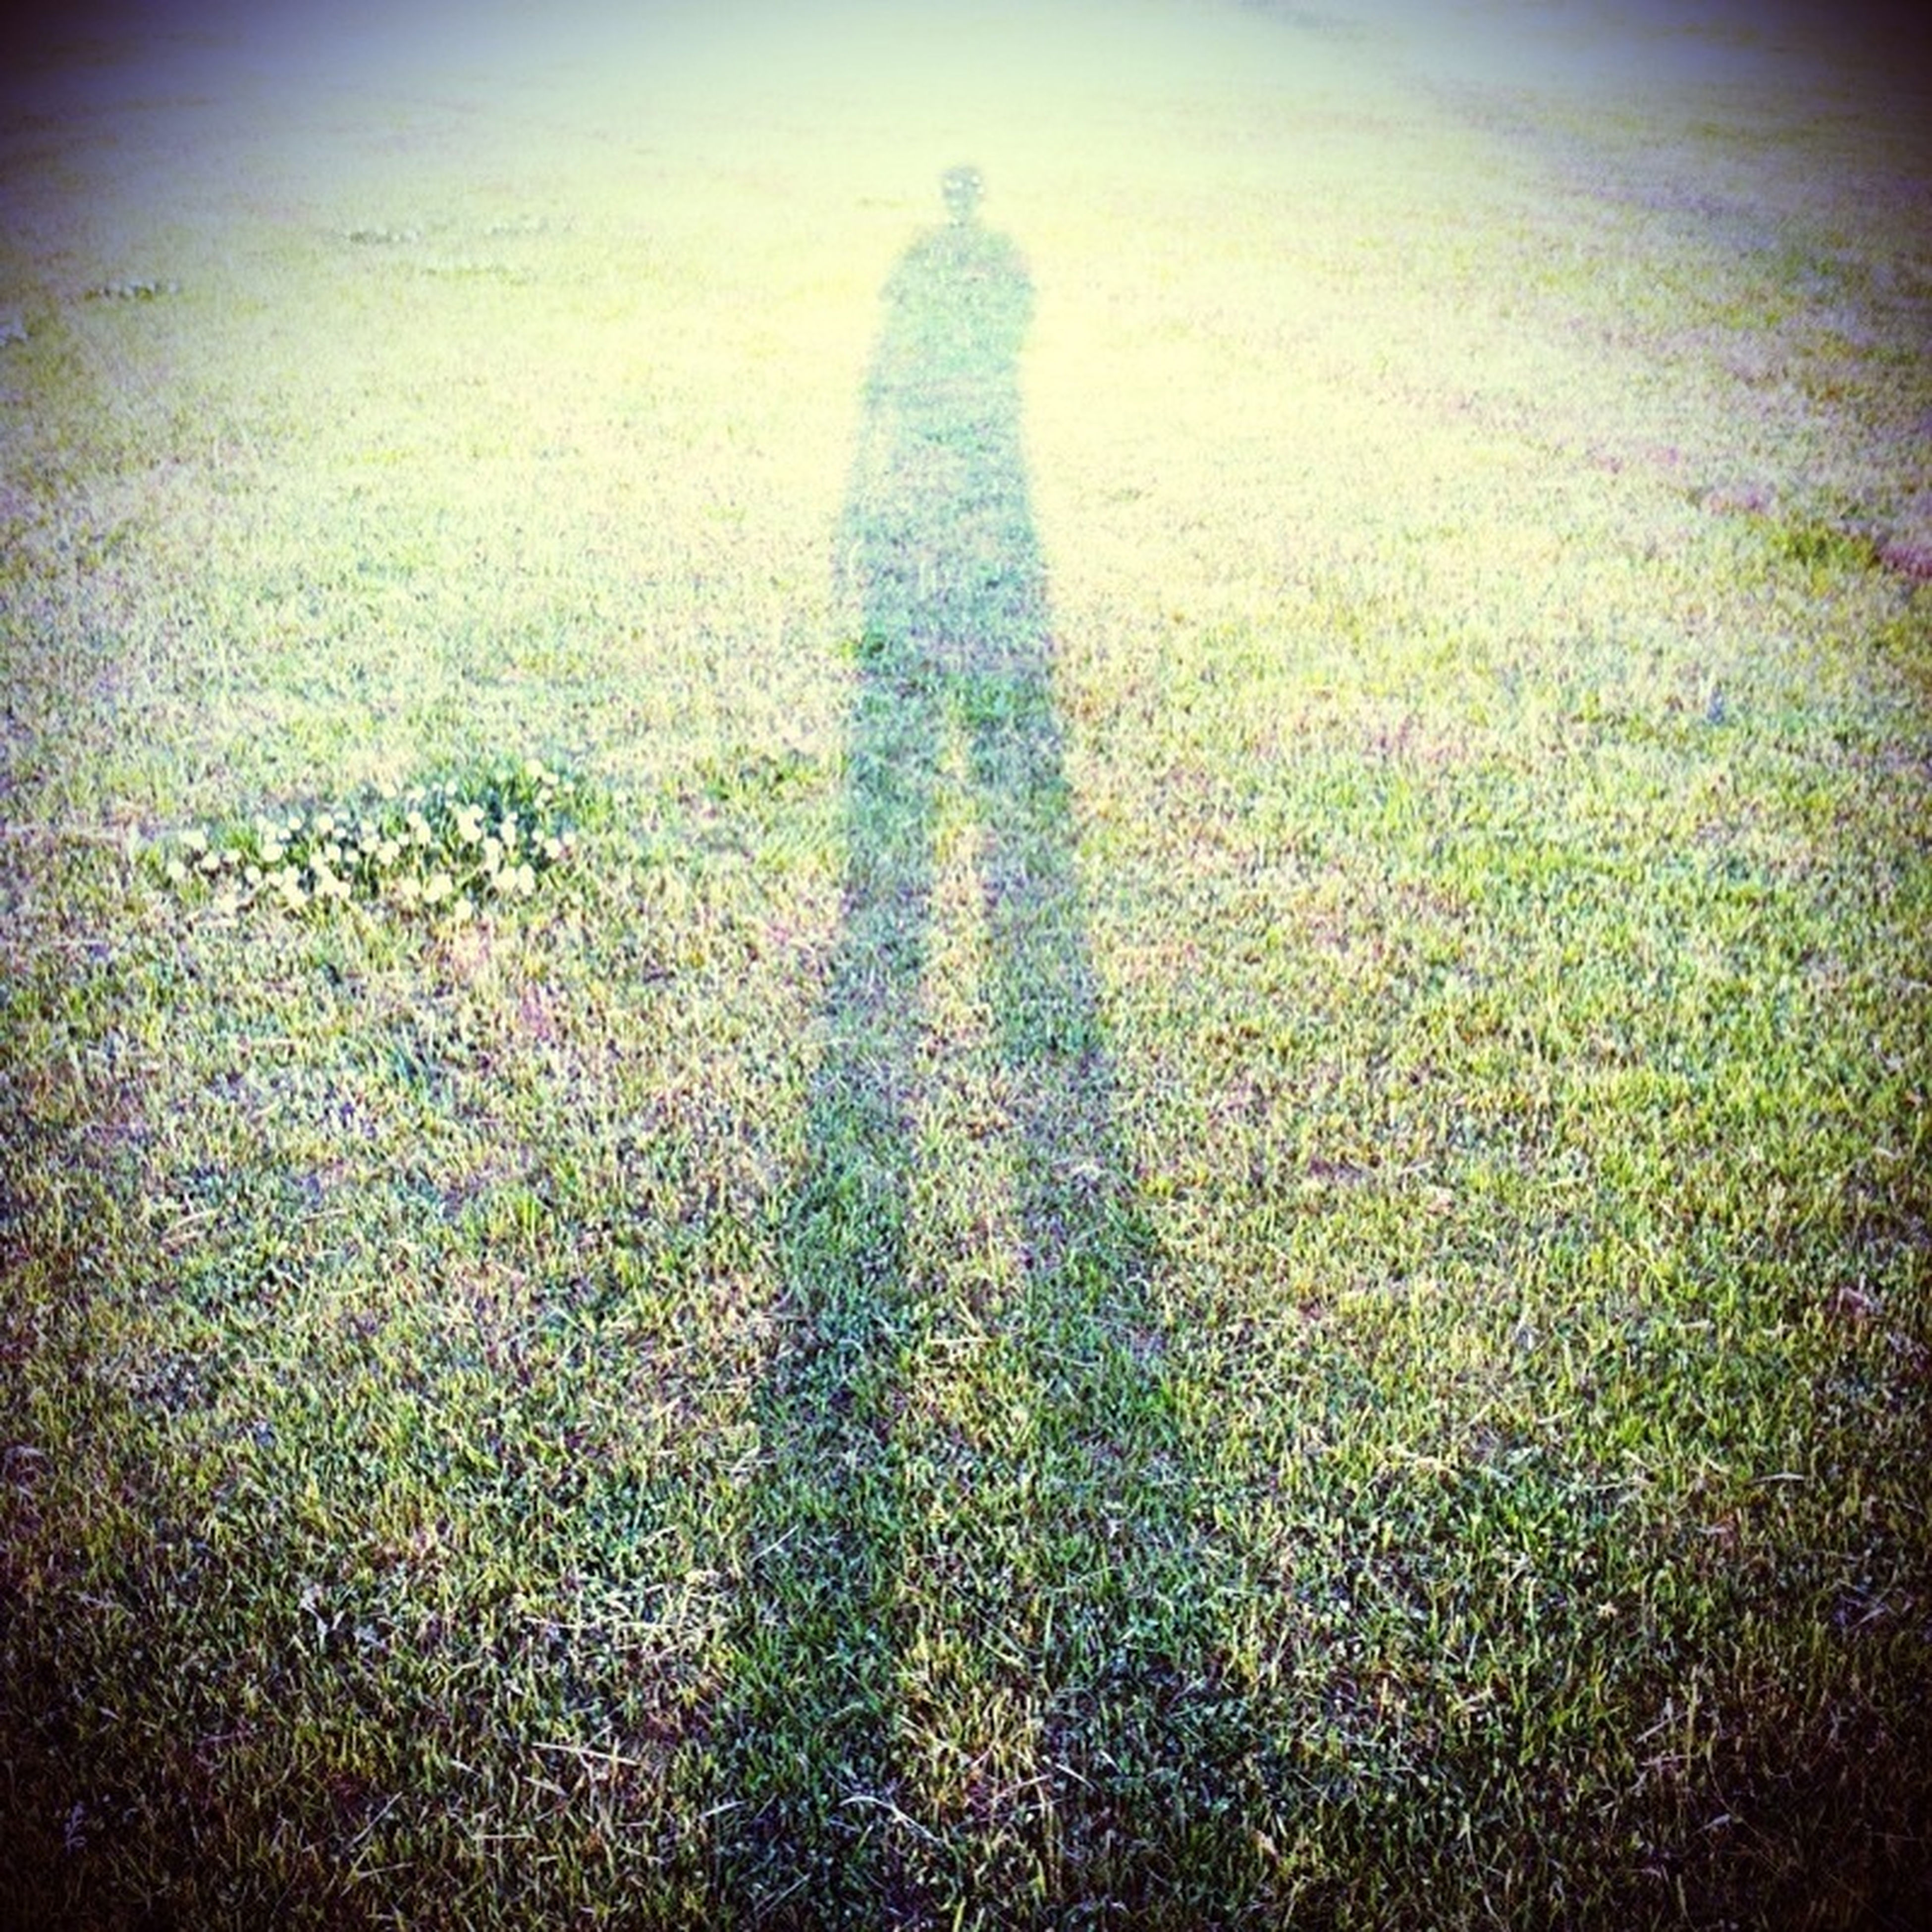 grass, grassy, shadow, field, sunlight, standing, high angle view, auto post production filter, day, lifestyles, growth, nature, outdoors, leisure activity, plant, unrecognizable person, green color, focus on shadow